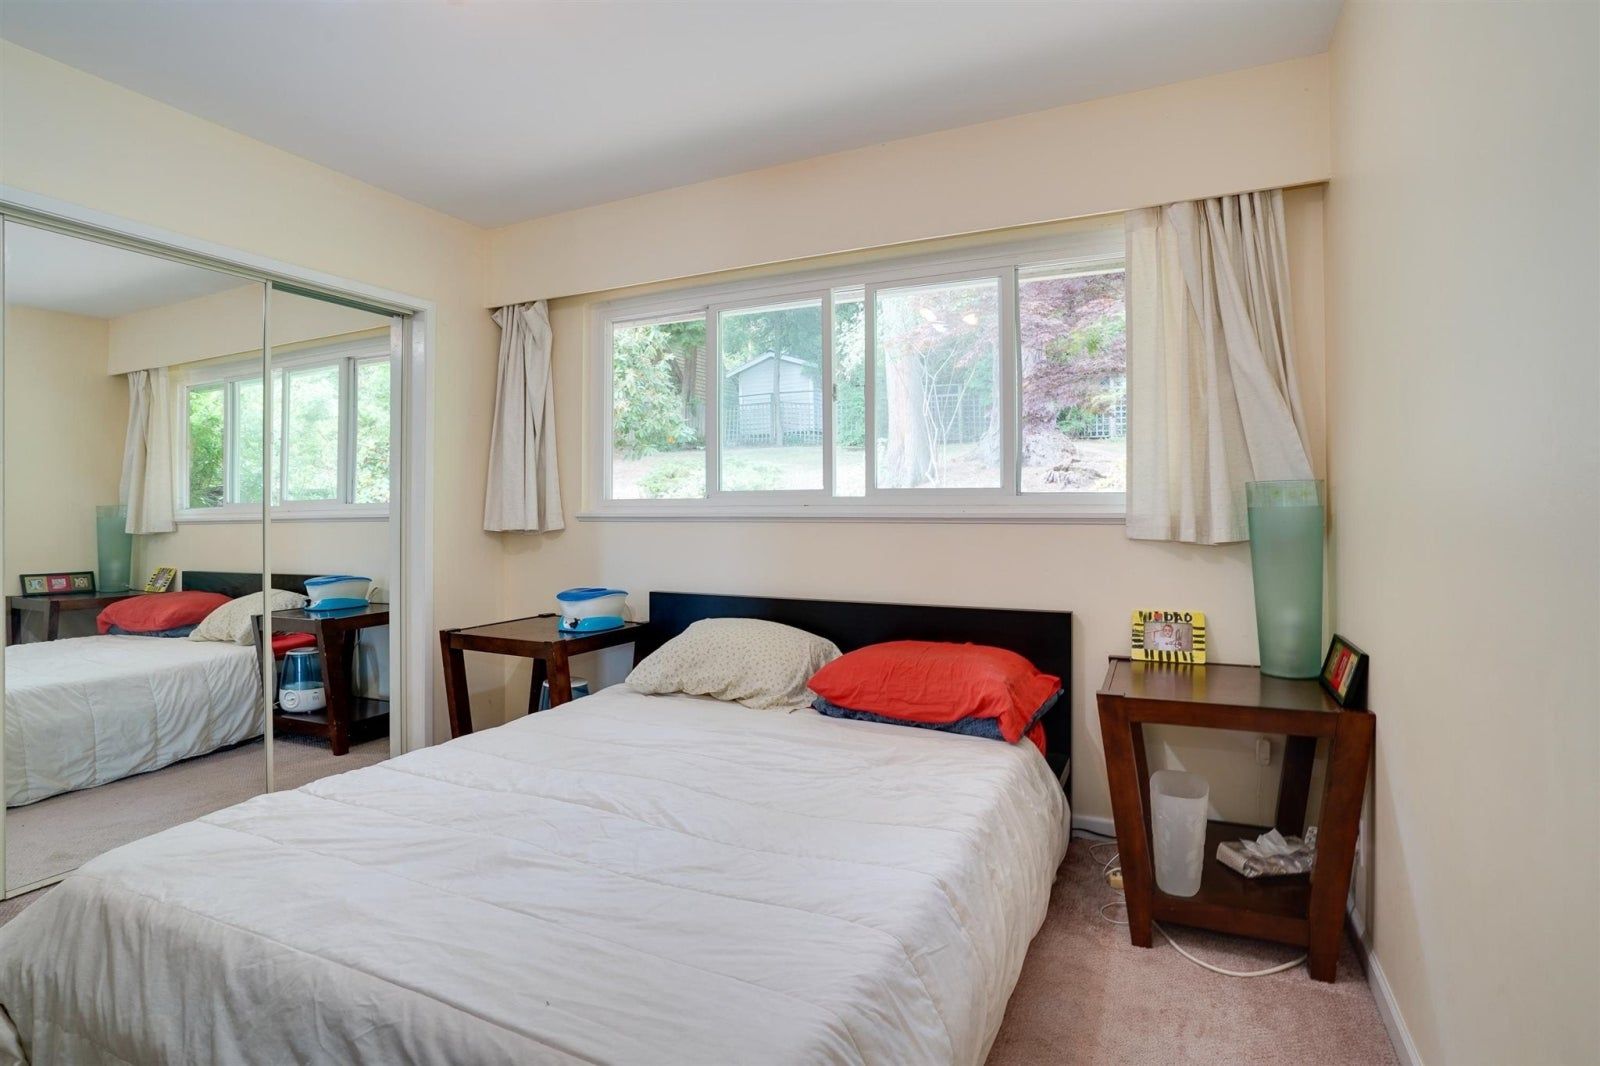 1044 W 17TH STREET - Pemberton Heights House/Single Family for sale, 3 Bedrooms (R2602389) #9